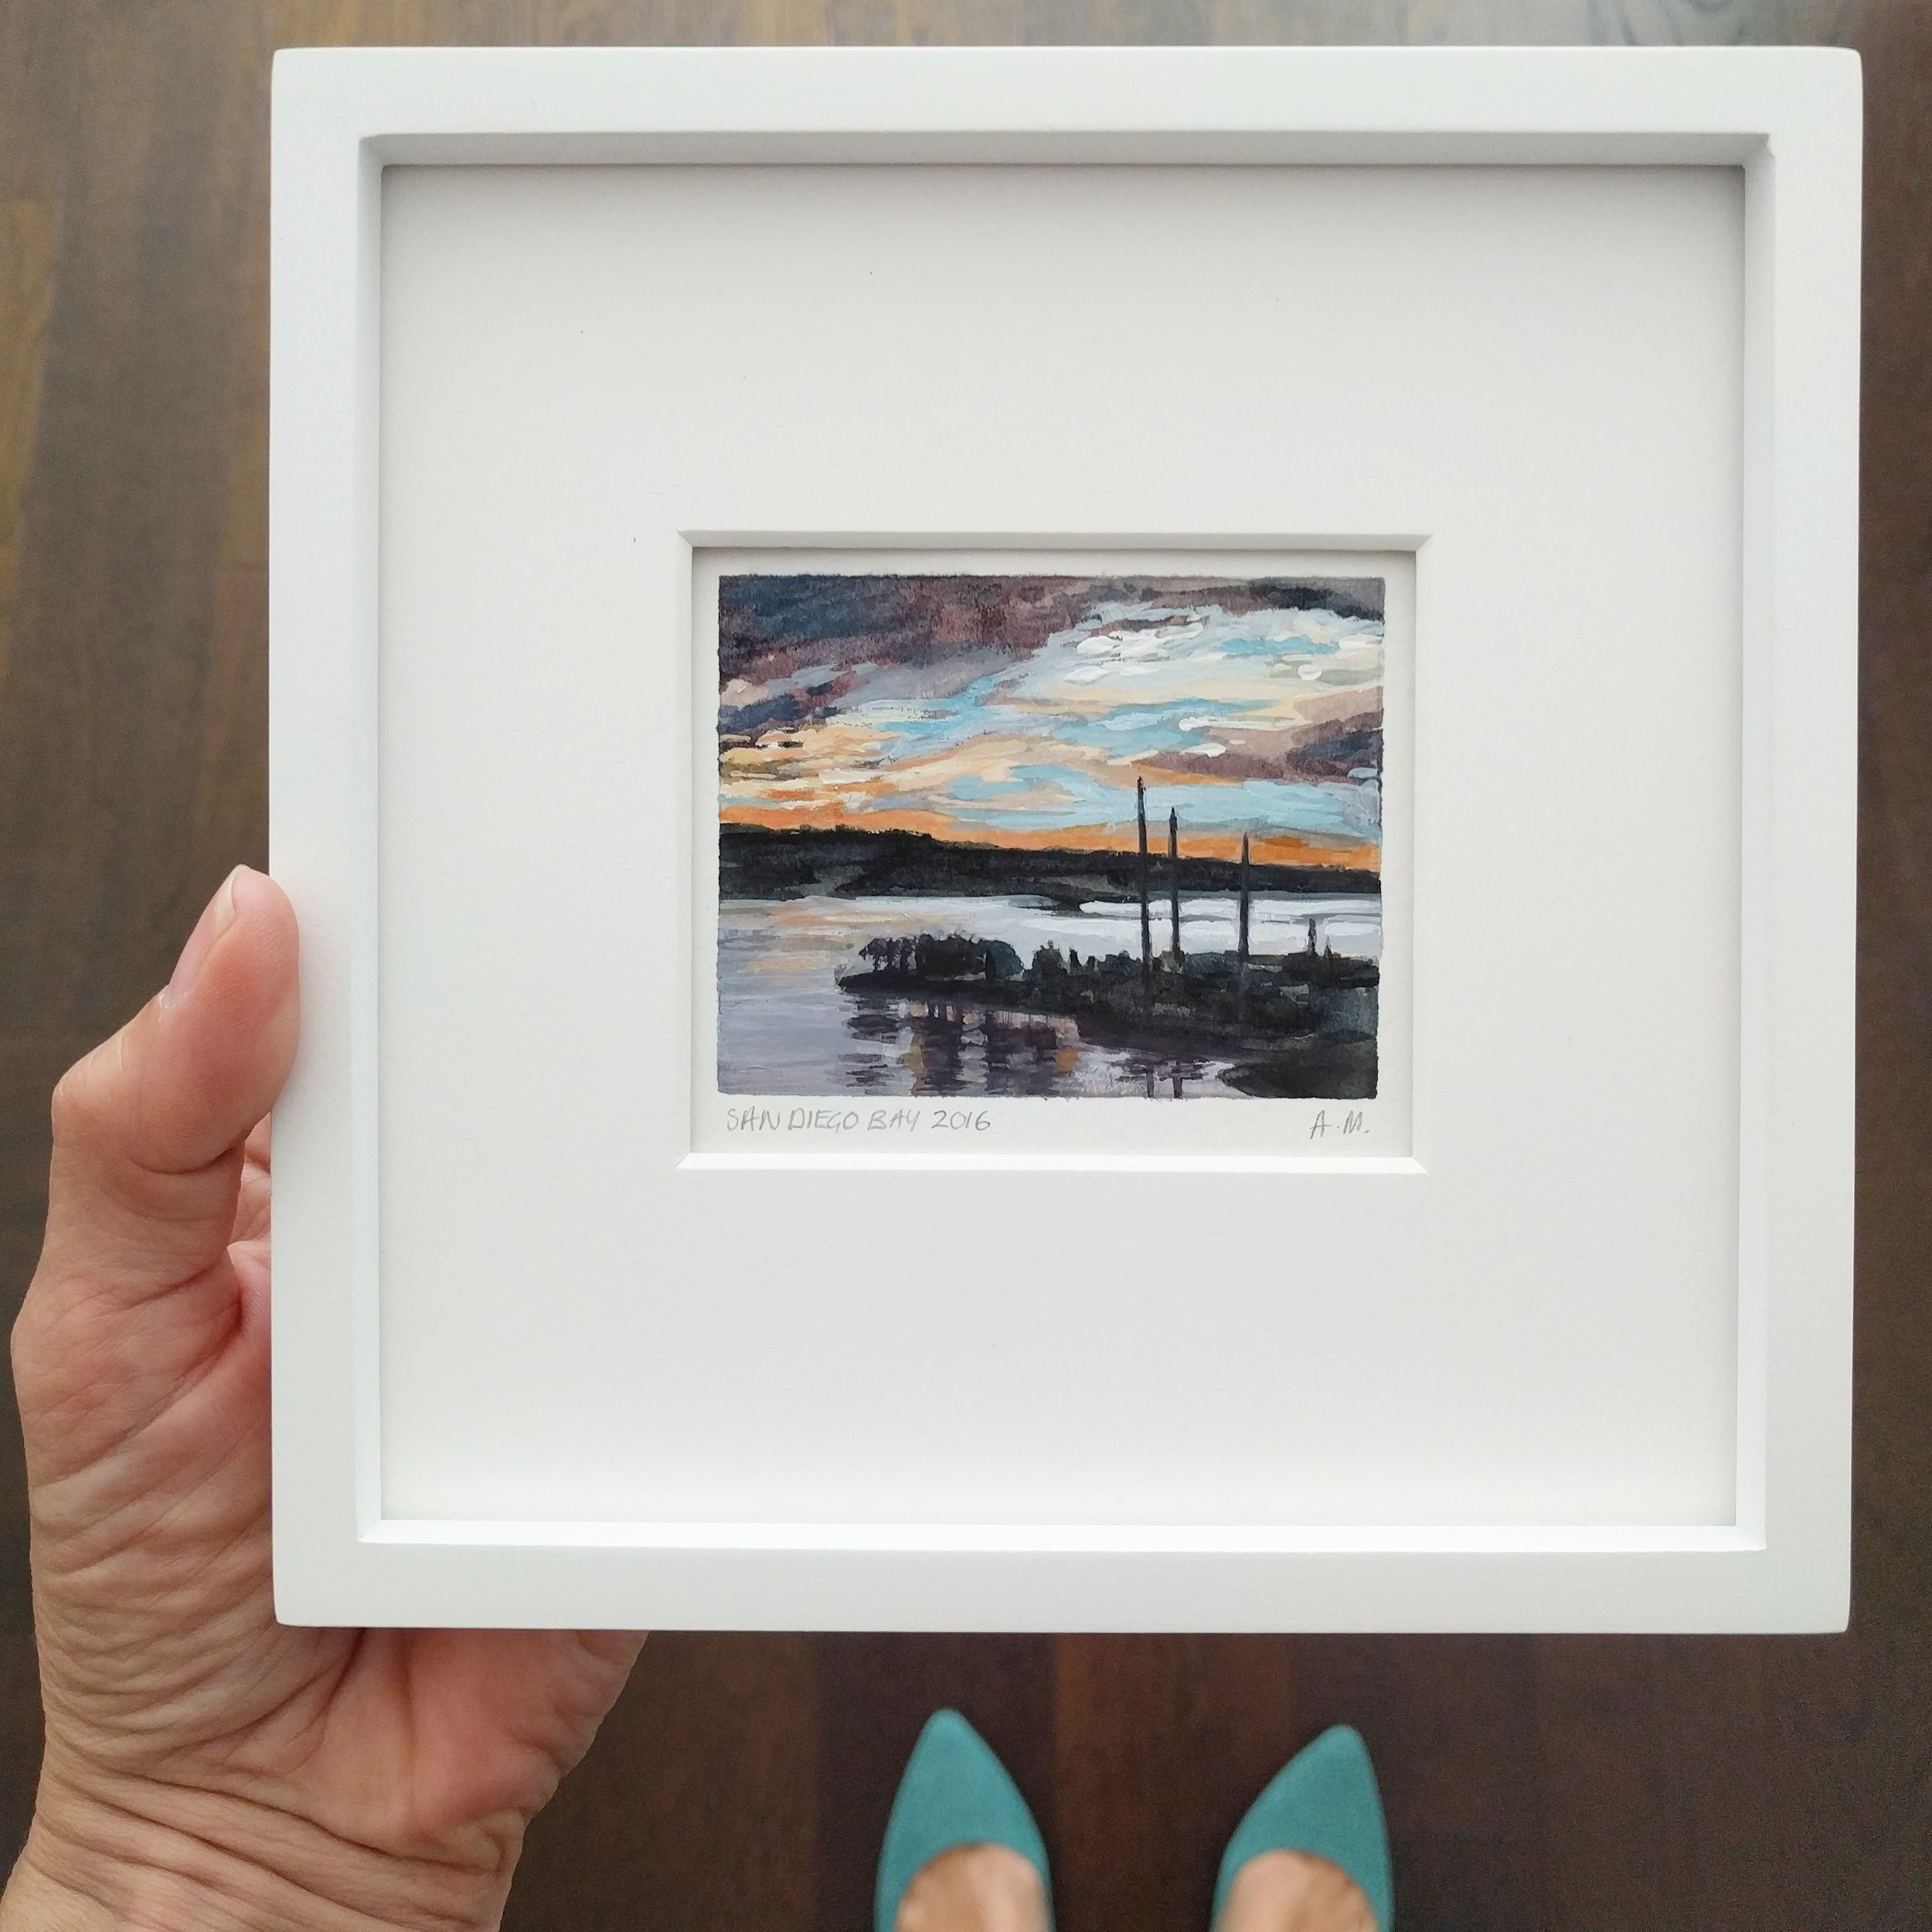 My Small Paintings framed miniature watercolour tiny art of sunset sky over yachts in harbour San Diego Bay